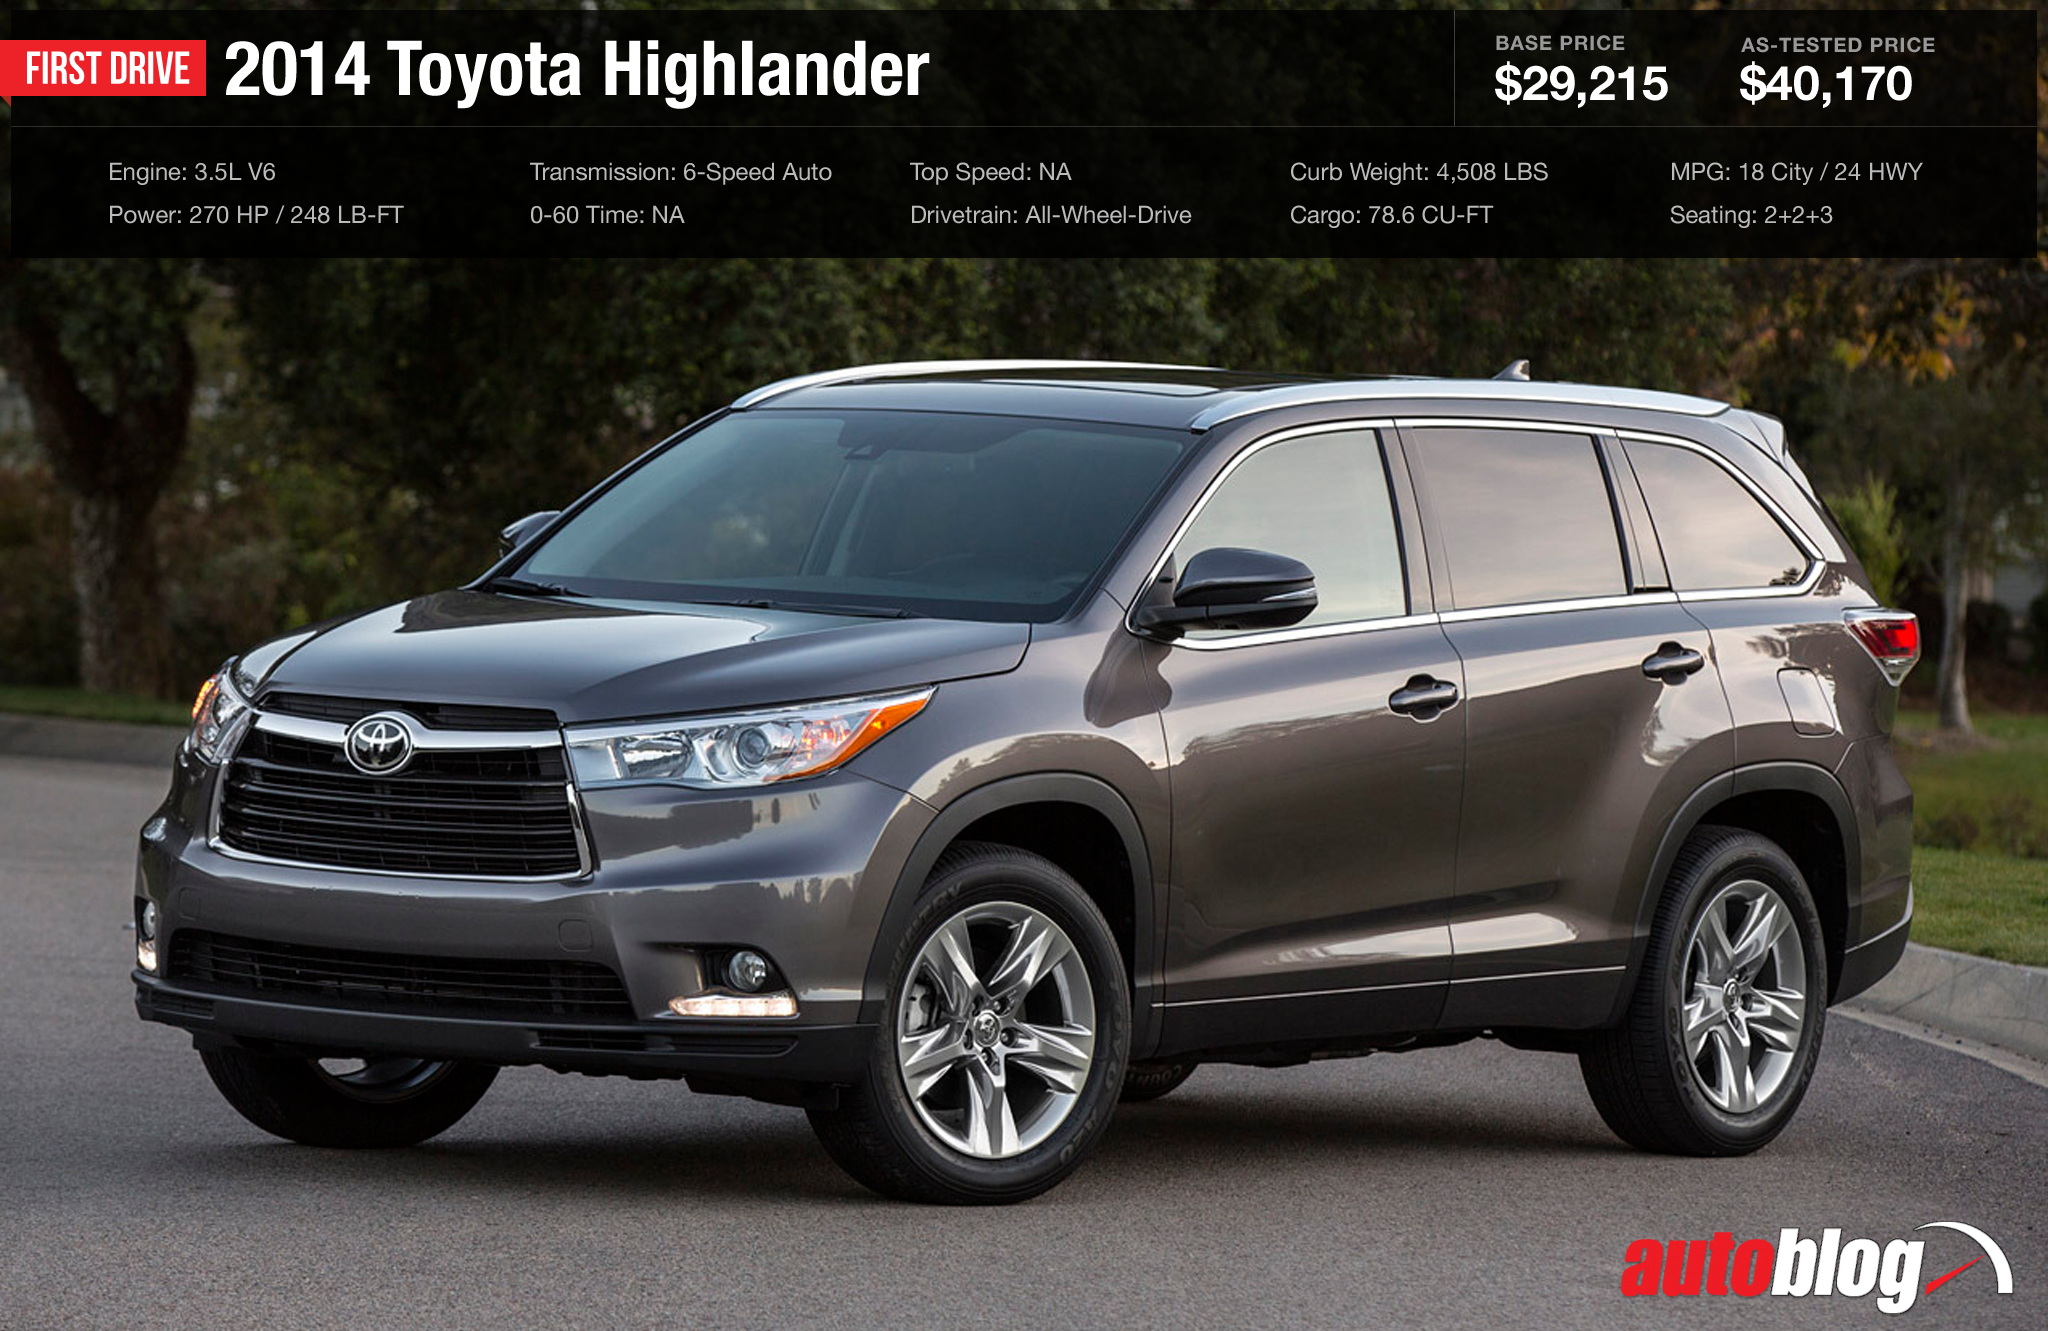 We give the 2014 toyota highlander a first drive review http